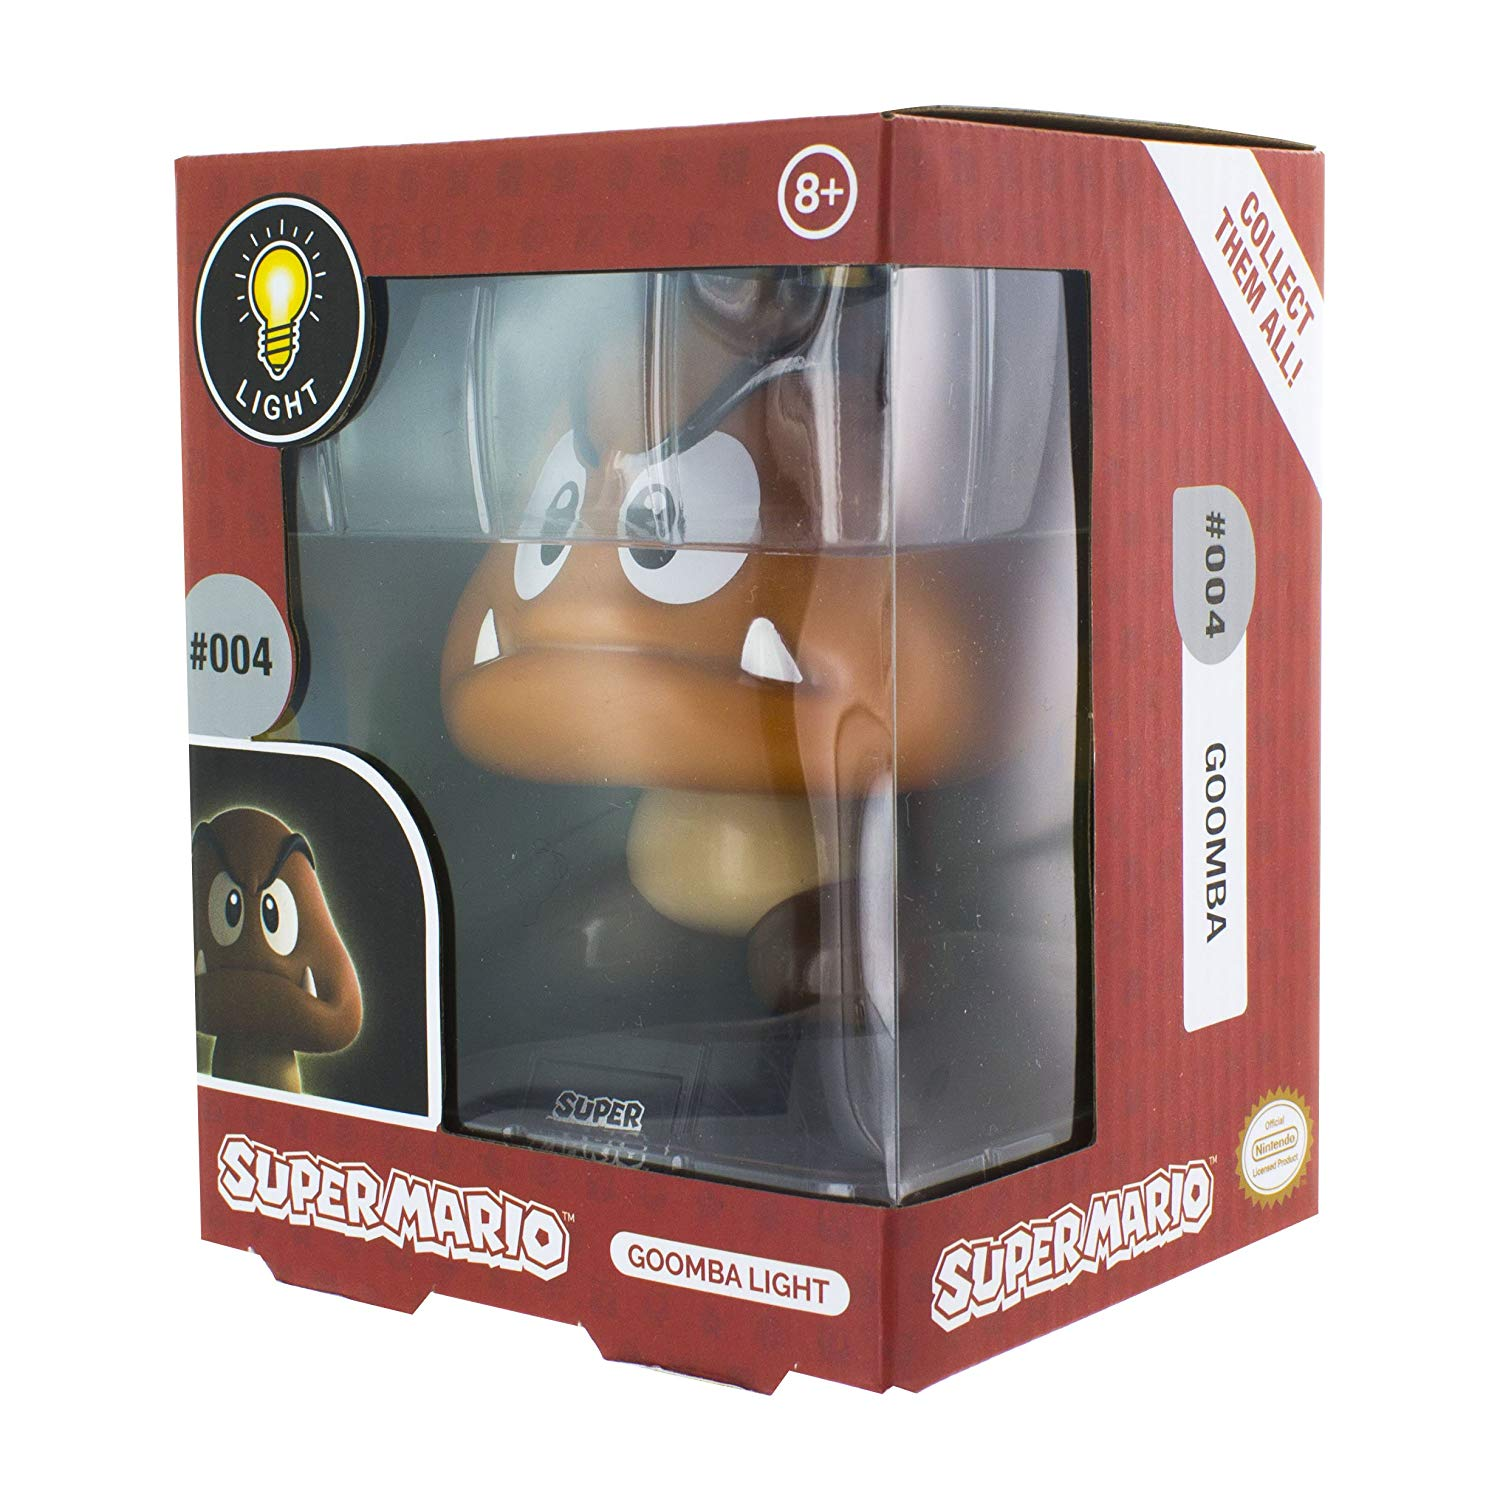 Super Mario Goomba 3D Light, Multi-Colour, Merchandise, DVDMEGASTORE, DVDMEGASTORE